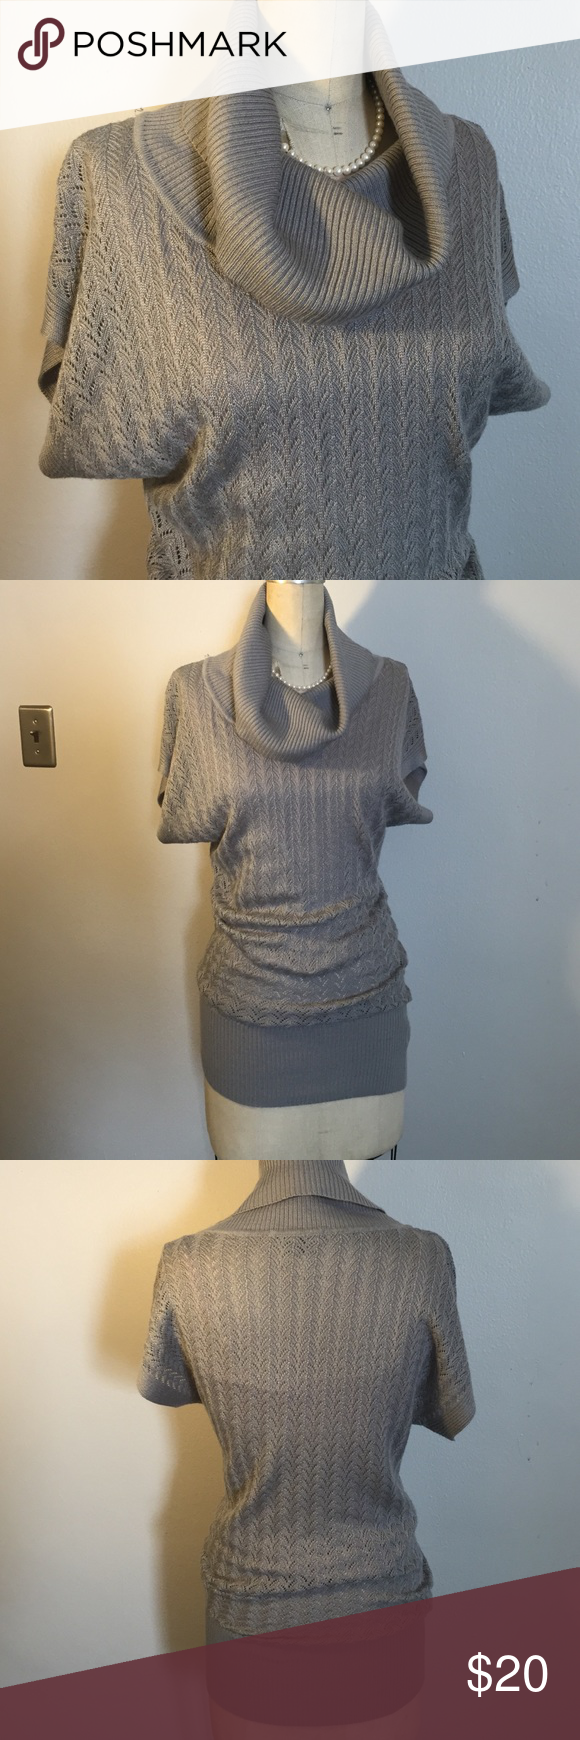 Silvery grey cowl neck tunic Lightweight, open knit, soft and stretchy. Very carefully worn. Pair it with dark tights and knee high boots and you're good to go! 🙋 Tops Tunics